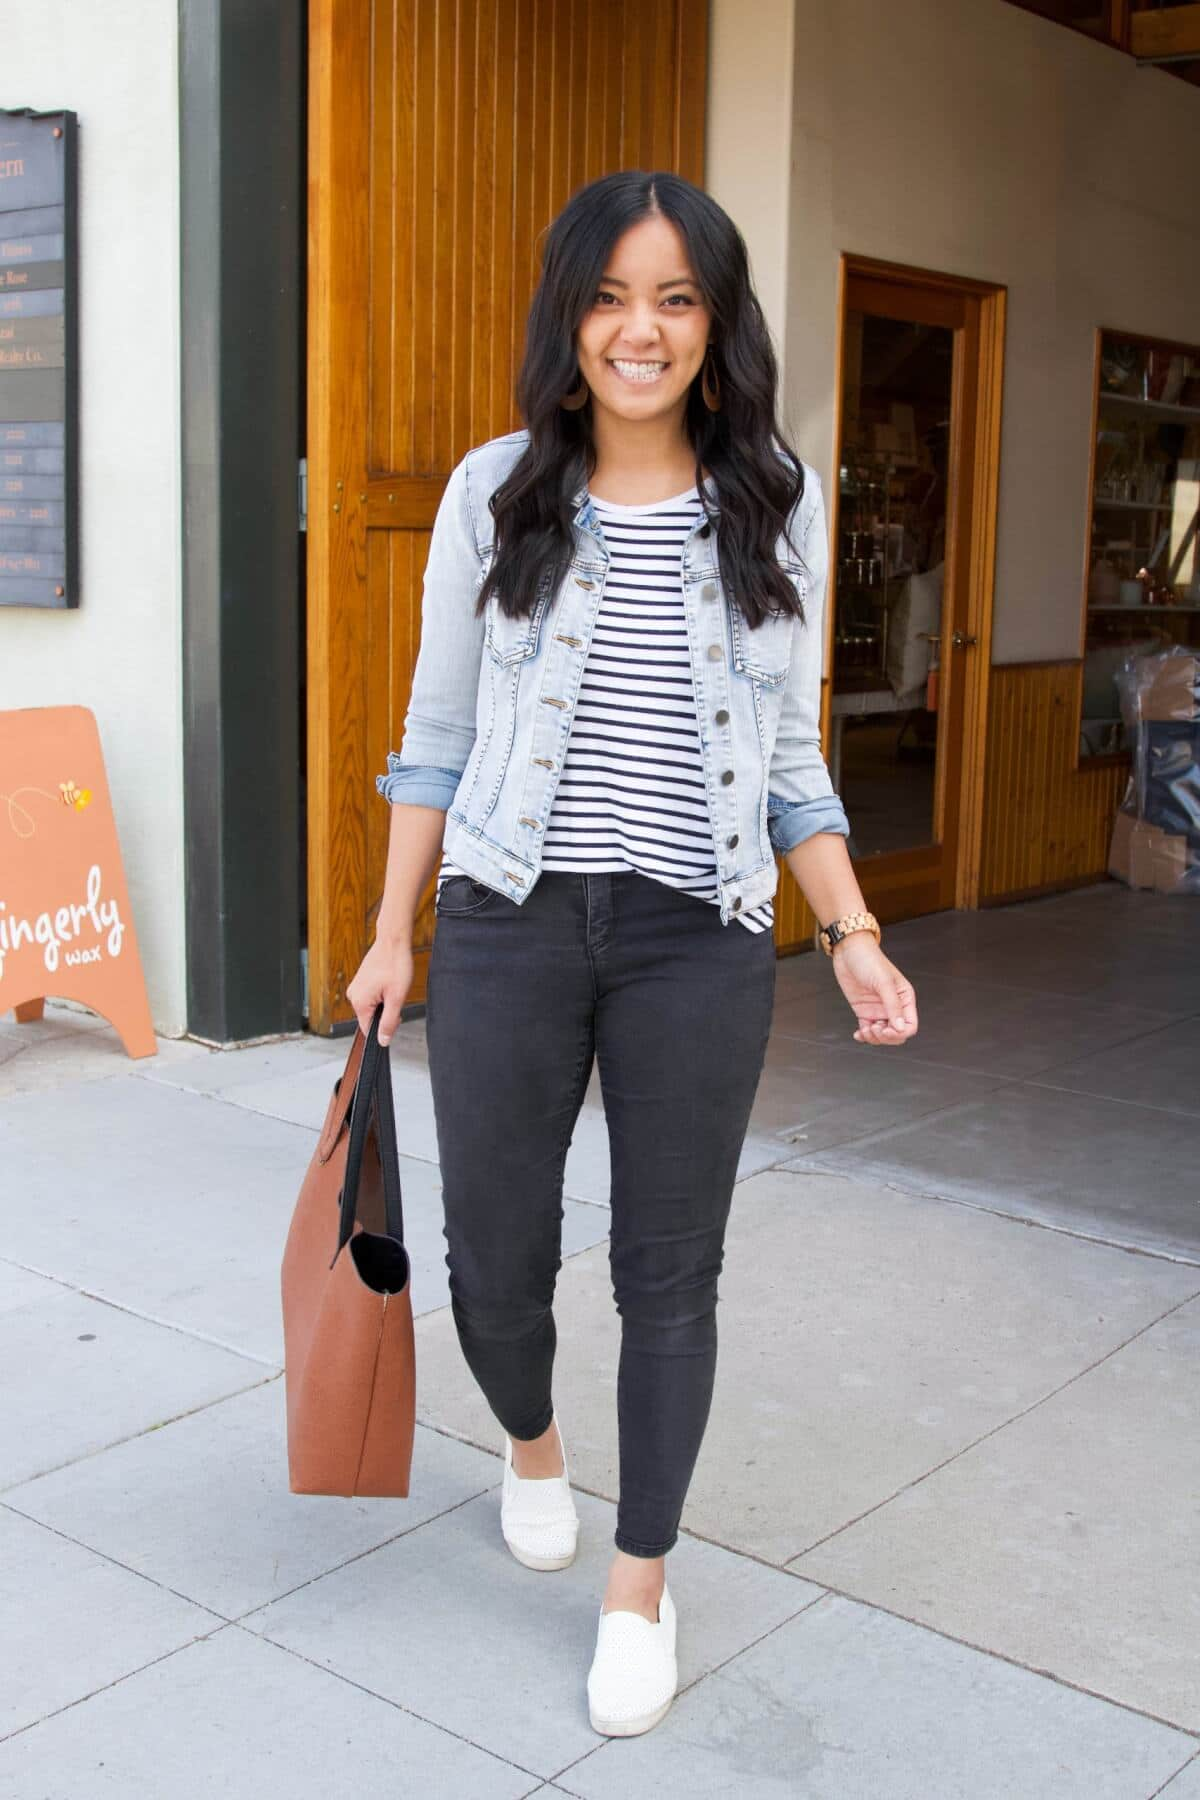 outfit with black jeans for spring: black jeans + black and white striped tee + denim jacket